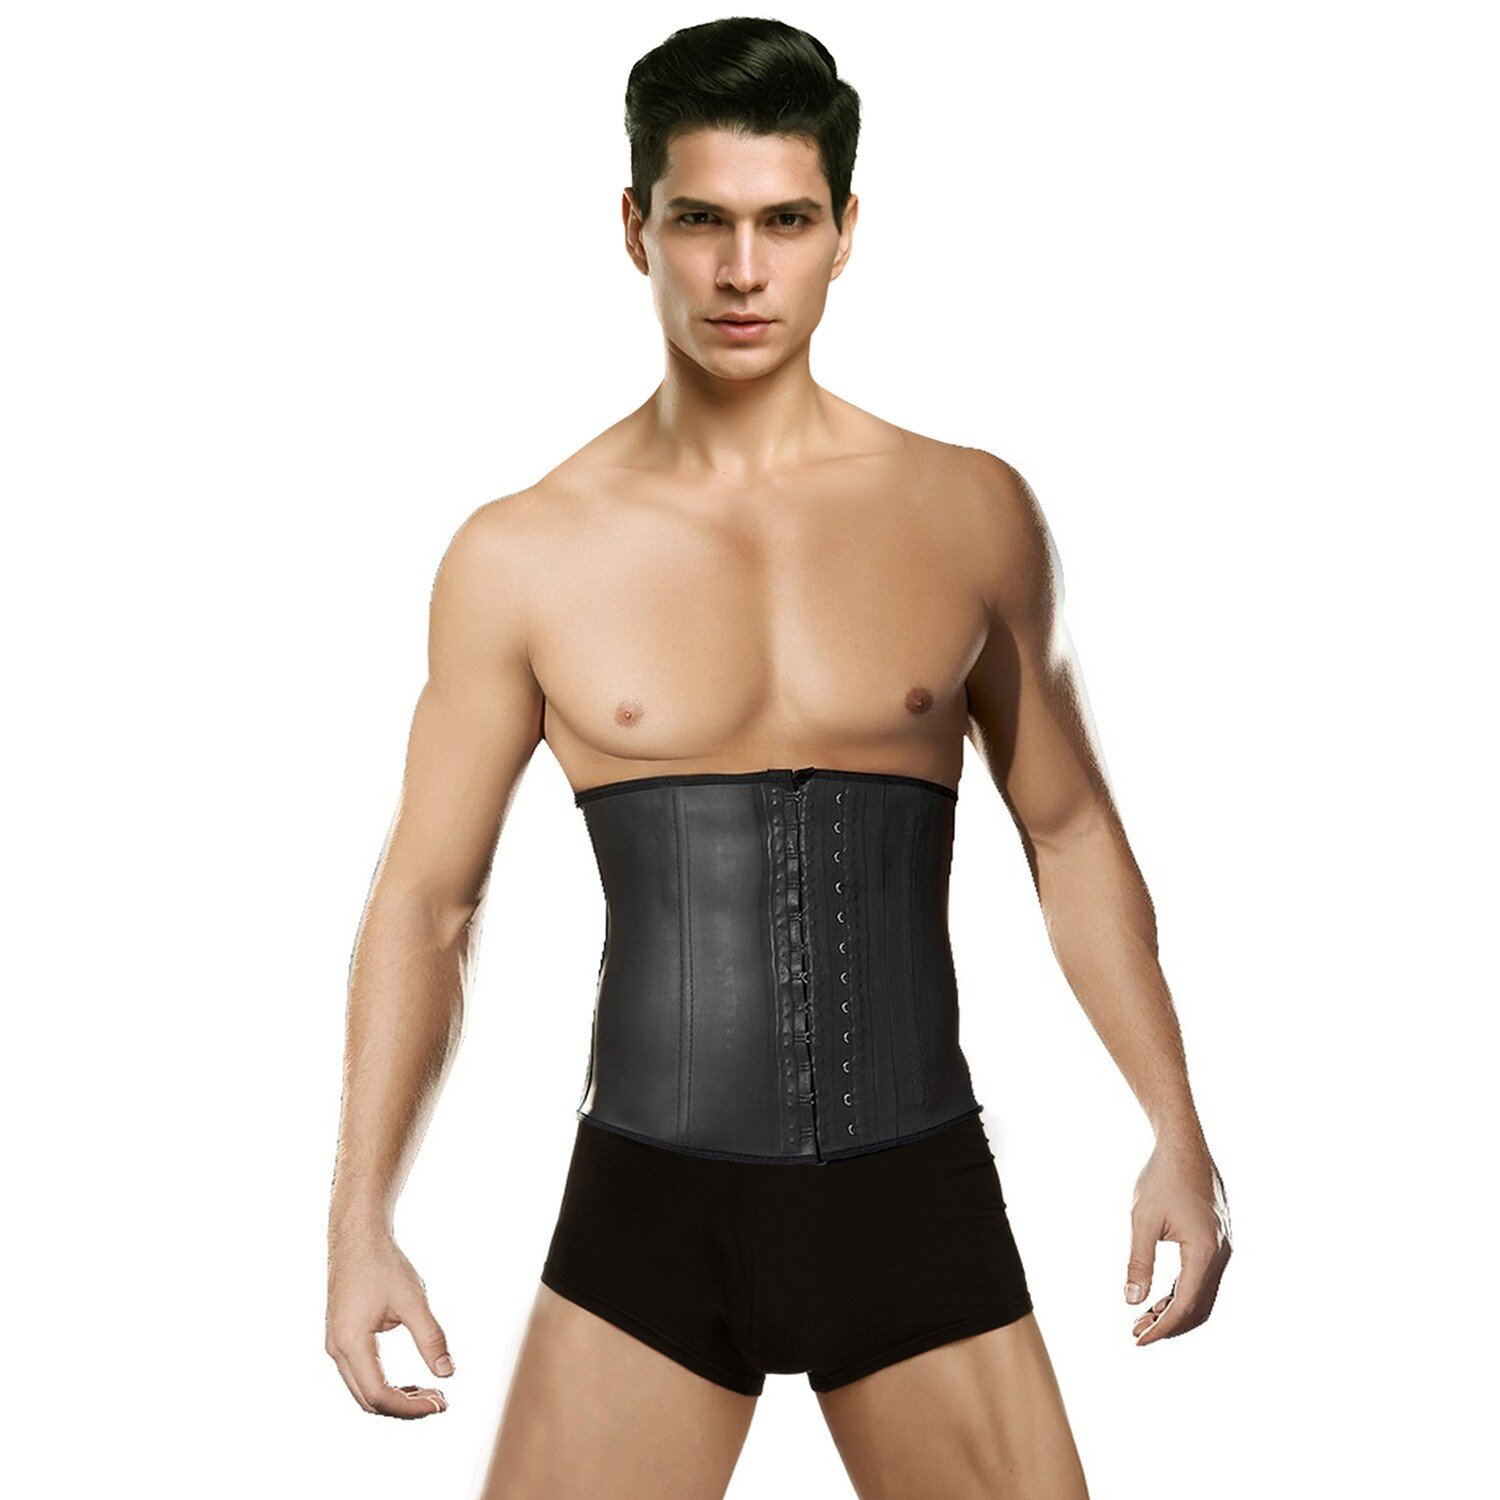 ba7984c139d 4 Steel boned design ensure the quality of this men waist trainer.  Adjustable 3 Rows of Hooks and eyes closure front will give more choice  that you could ...